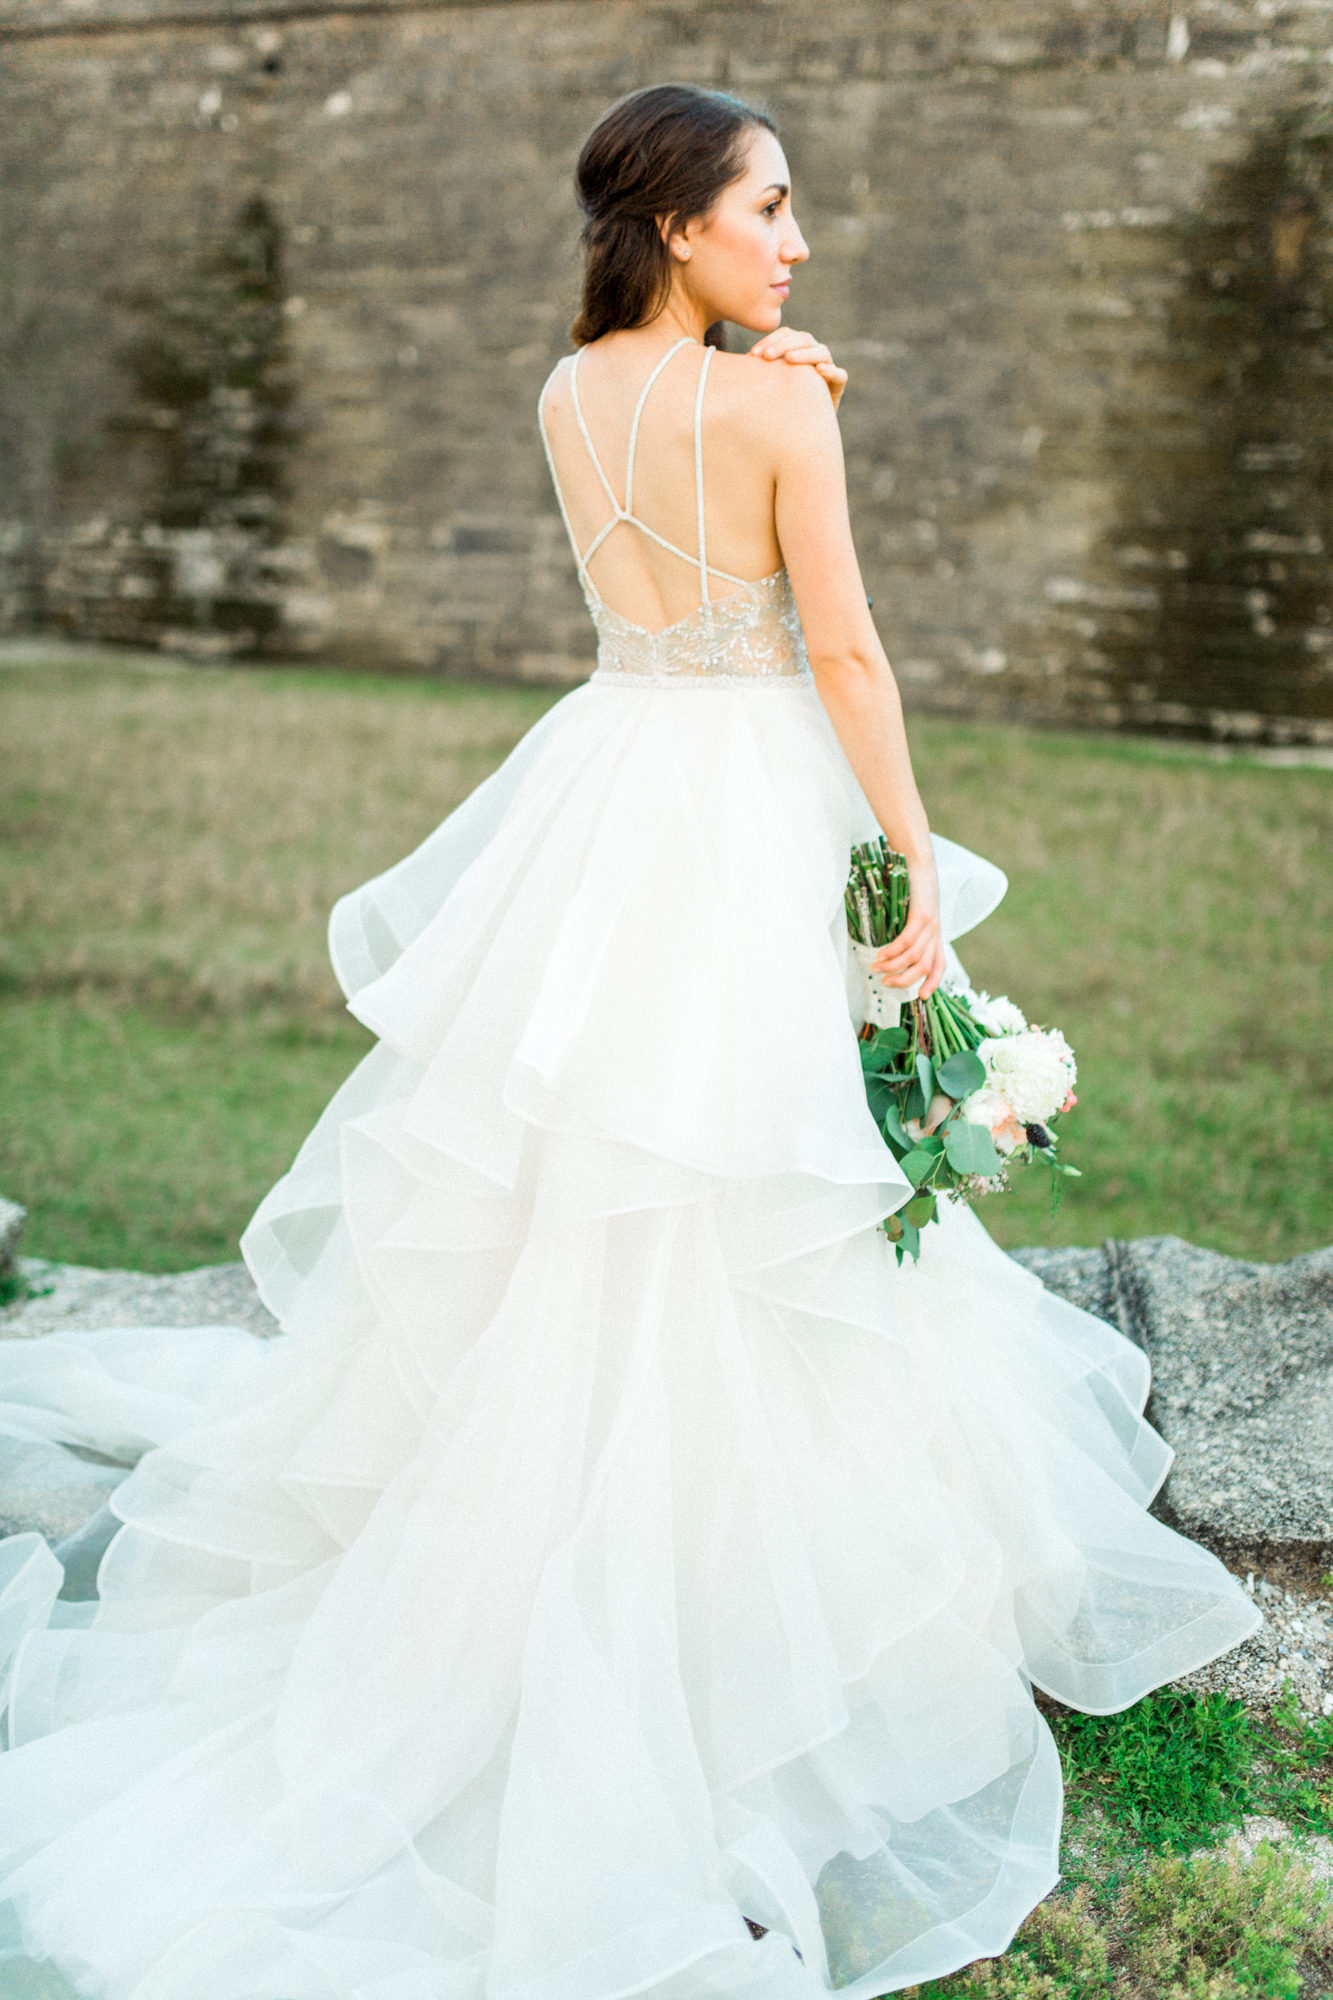 St. augustine, castillo de san marcos styled wedding bridal photo, wedding dress